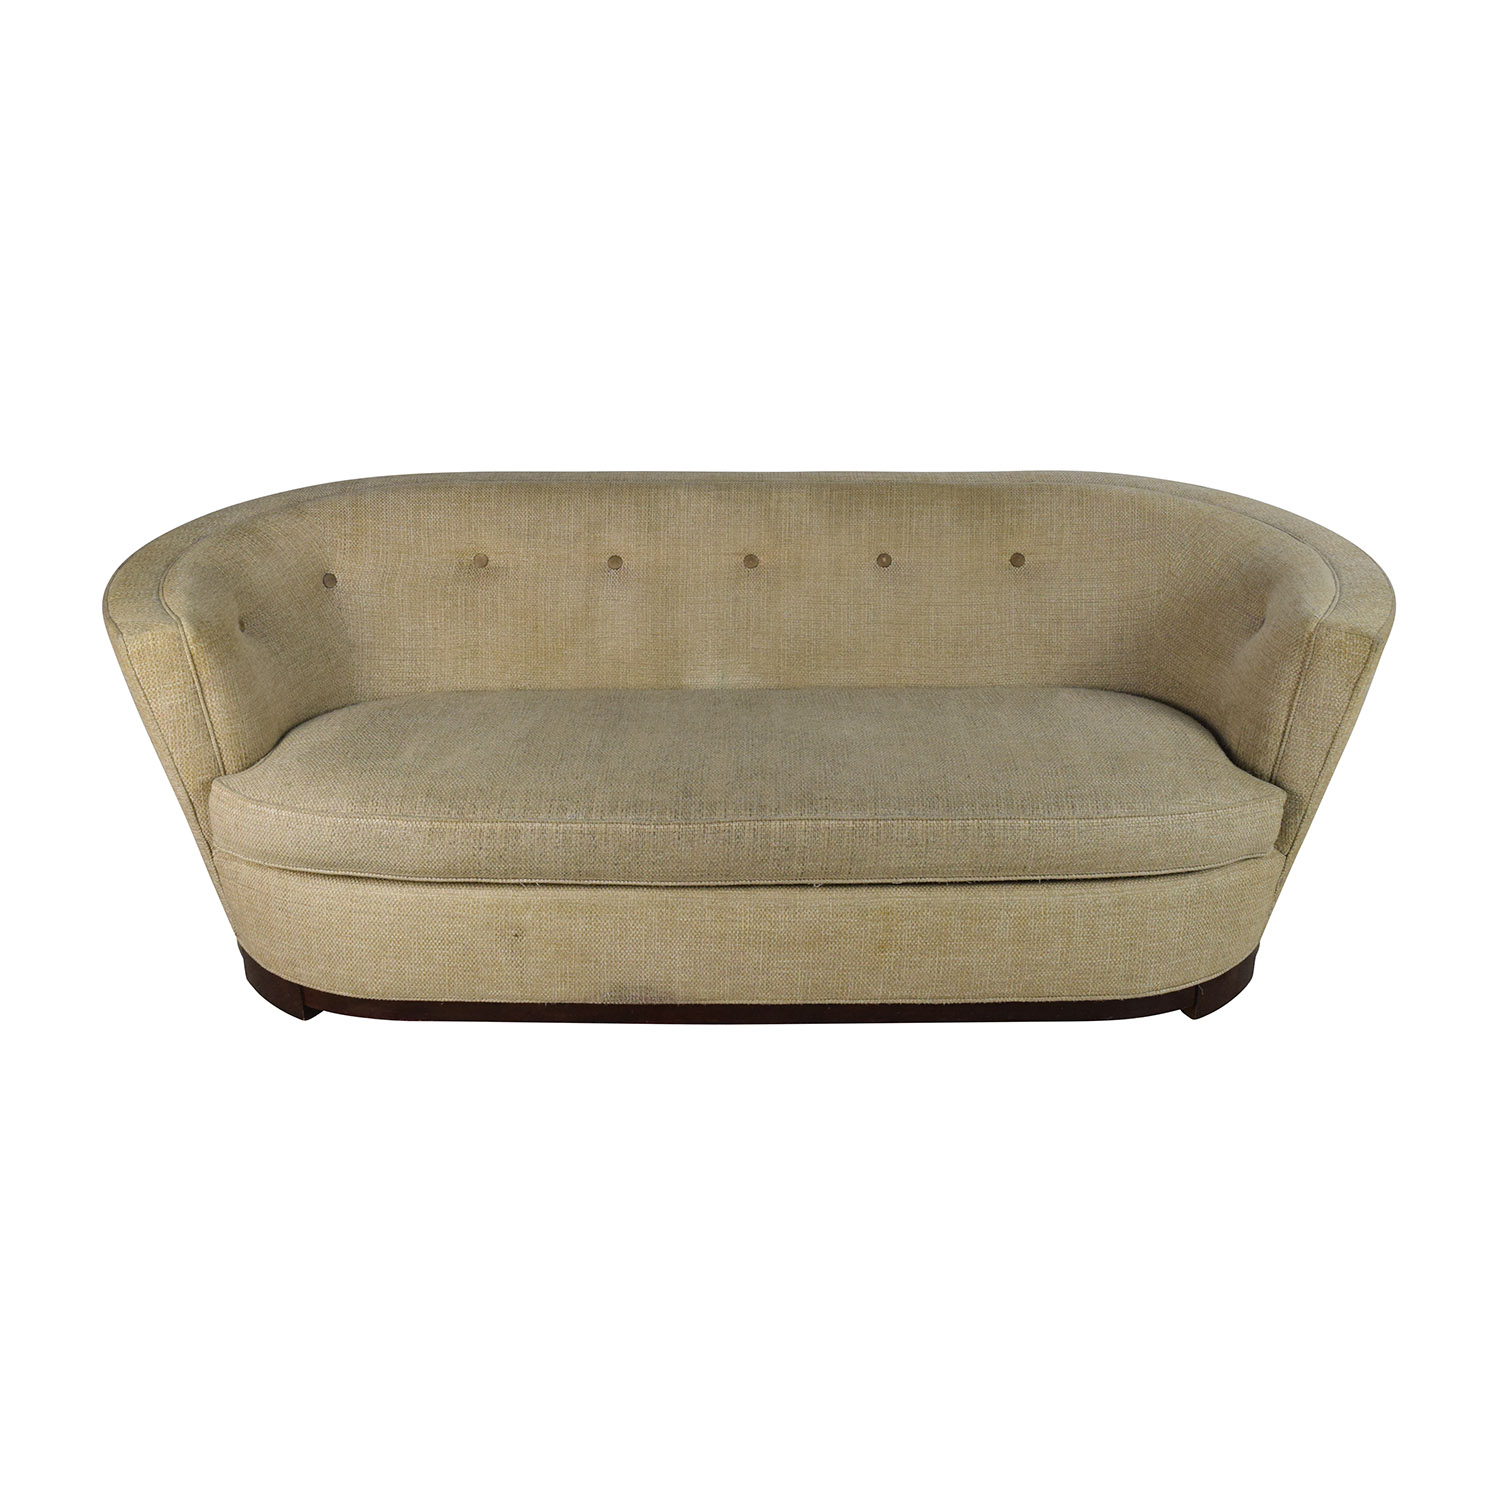 Raymour and Flanigan Raymour & Flanigan Visanti 90 Tan Curved Sofa coupon